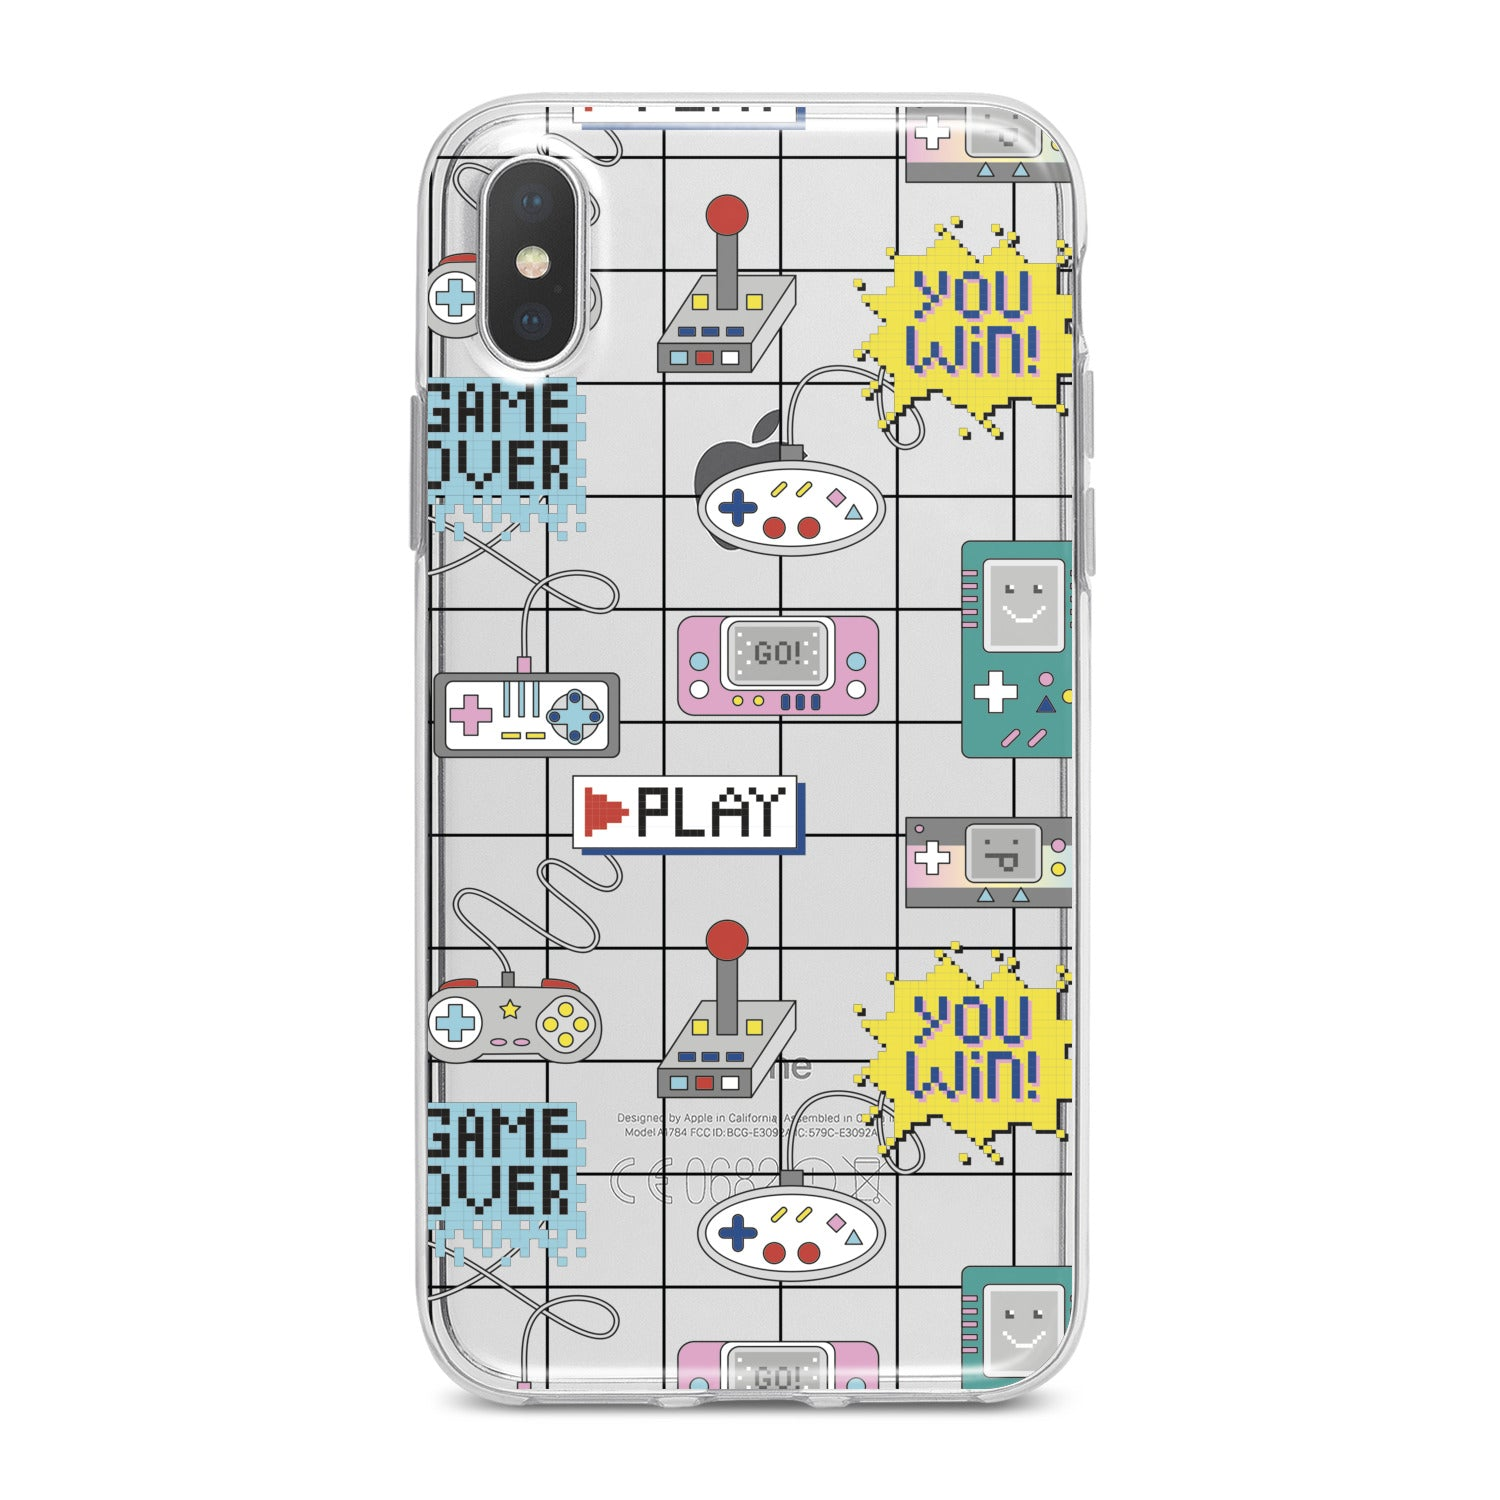 Lex Altern Geek Retro Gamepads Phone Case for your iPhone & Android phone.